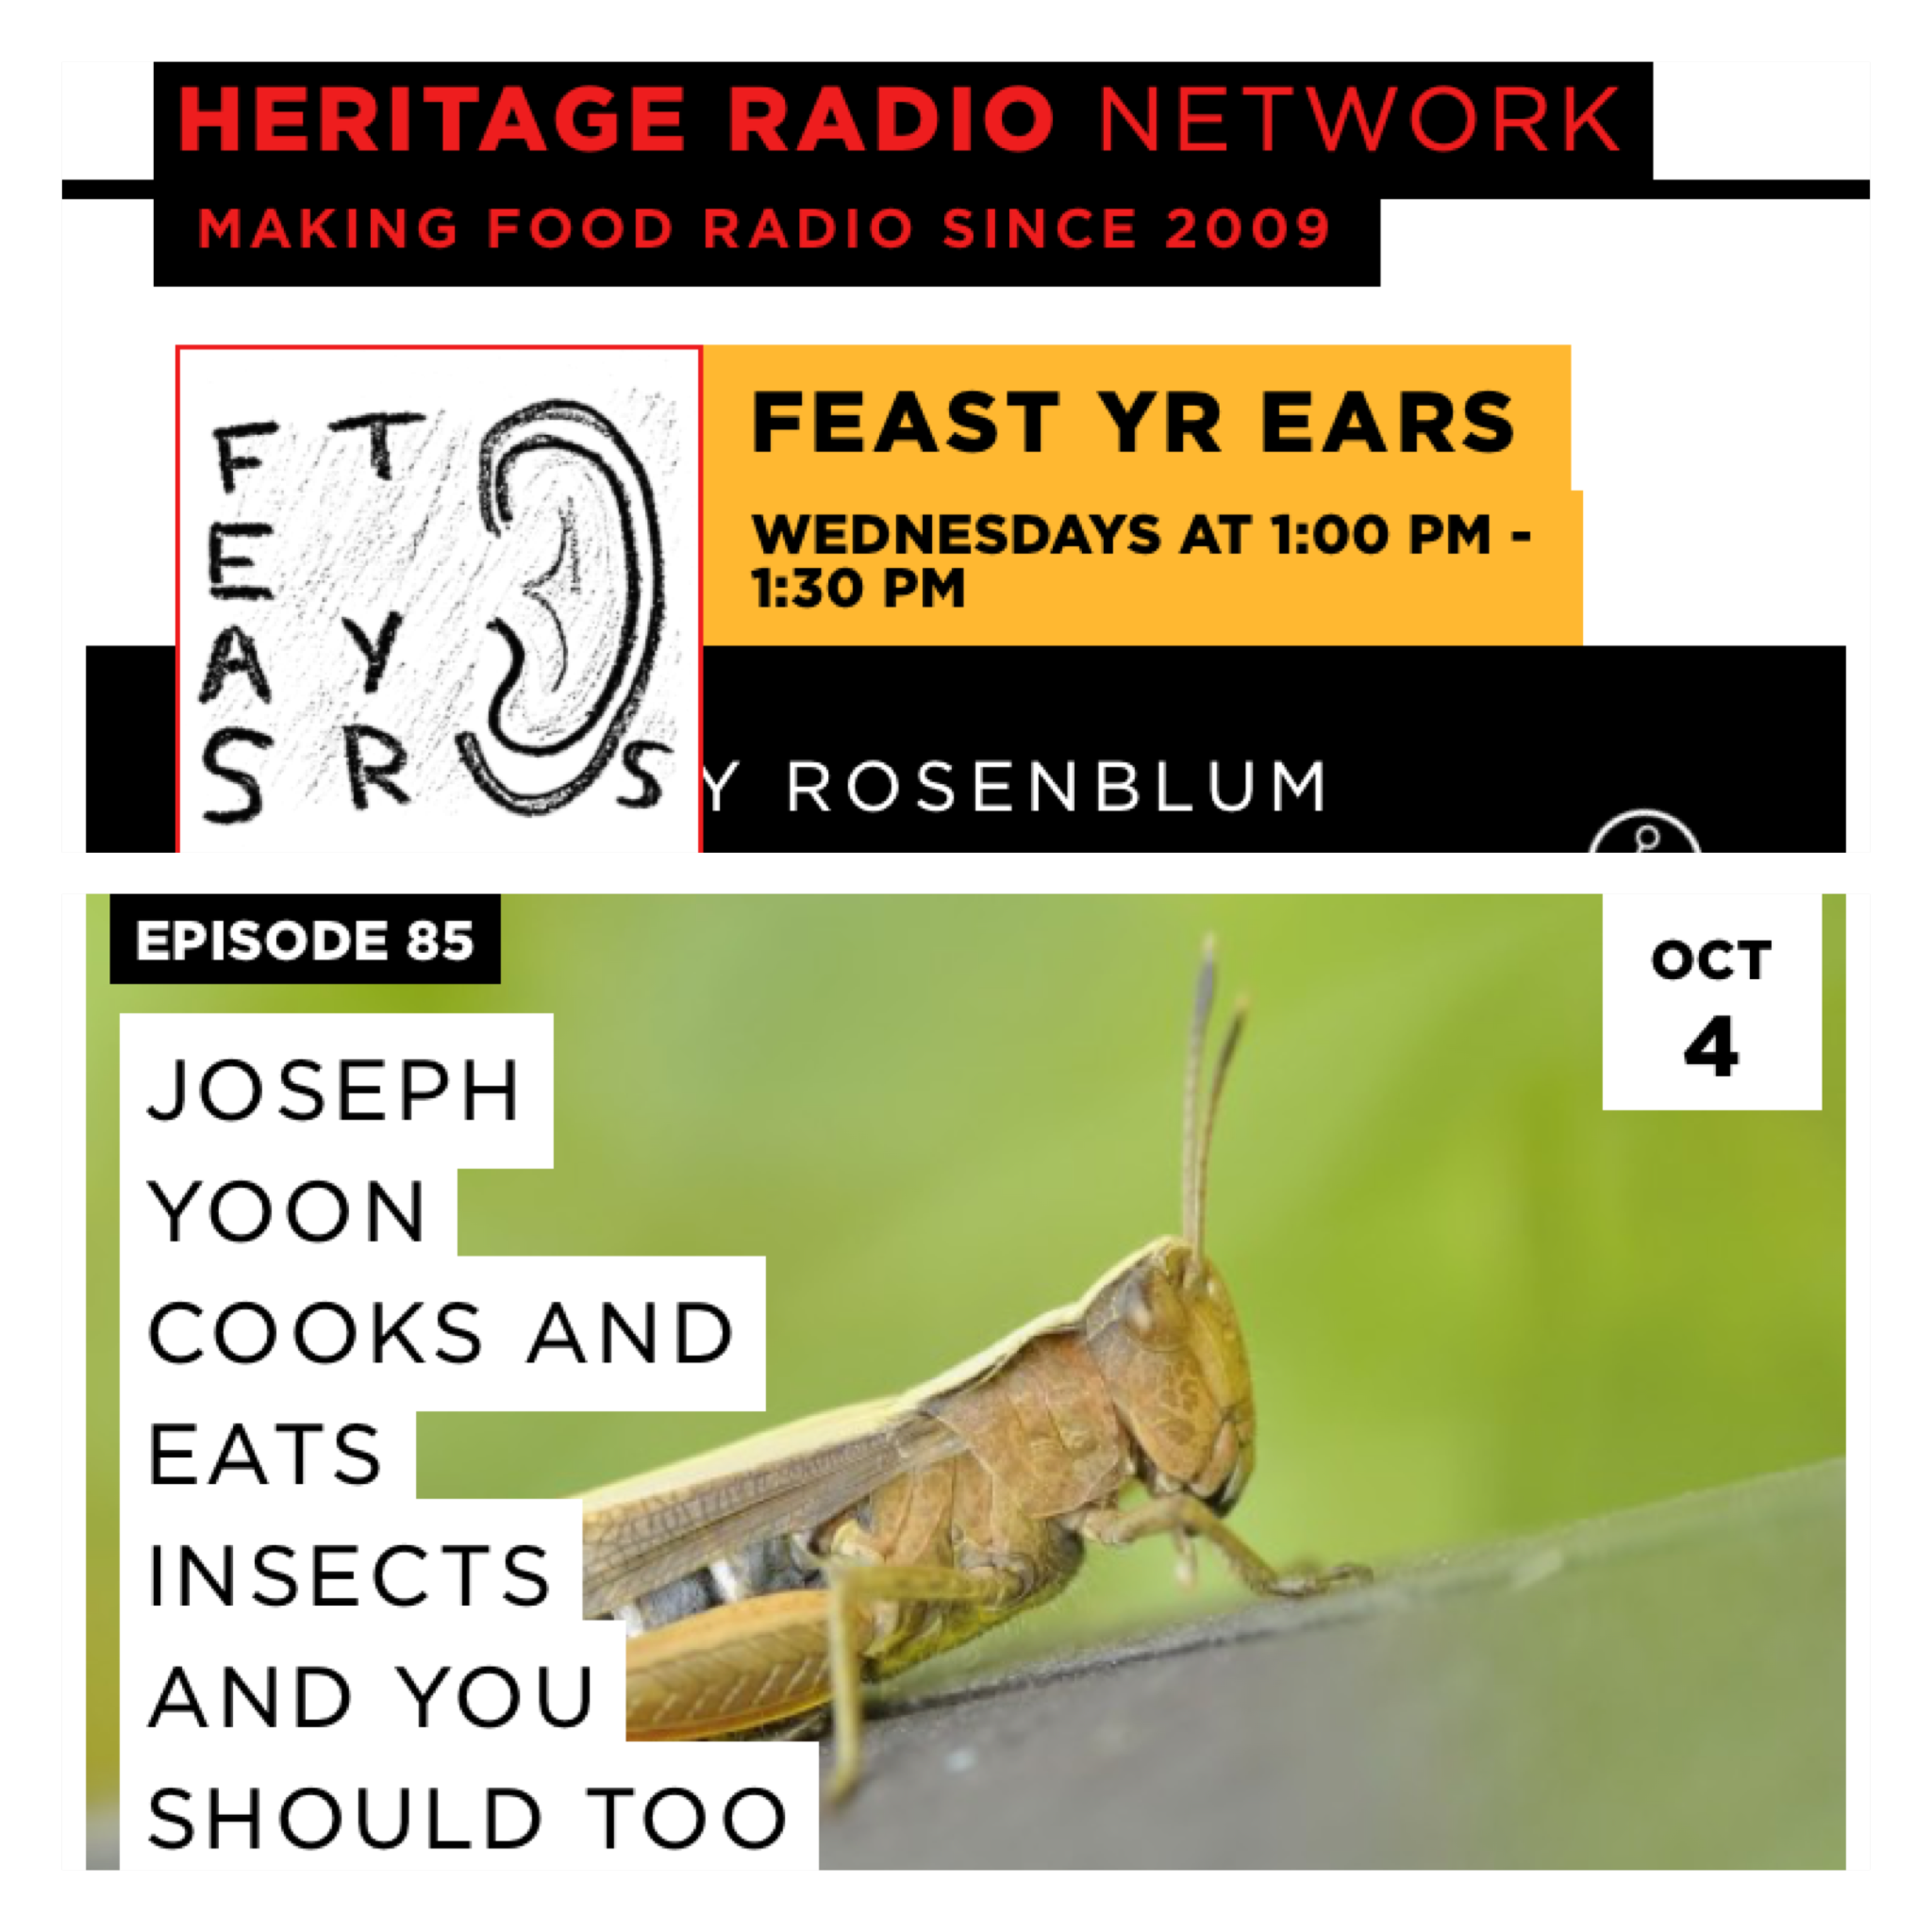 http://heritageradionetwork.org/podcast/joseph-yoon-cooks-and-eats-insects-and-you-should-too/